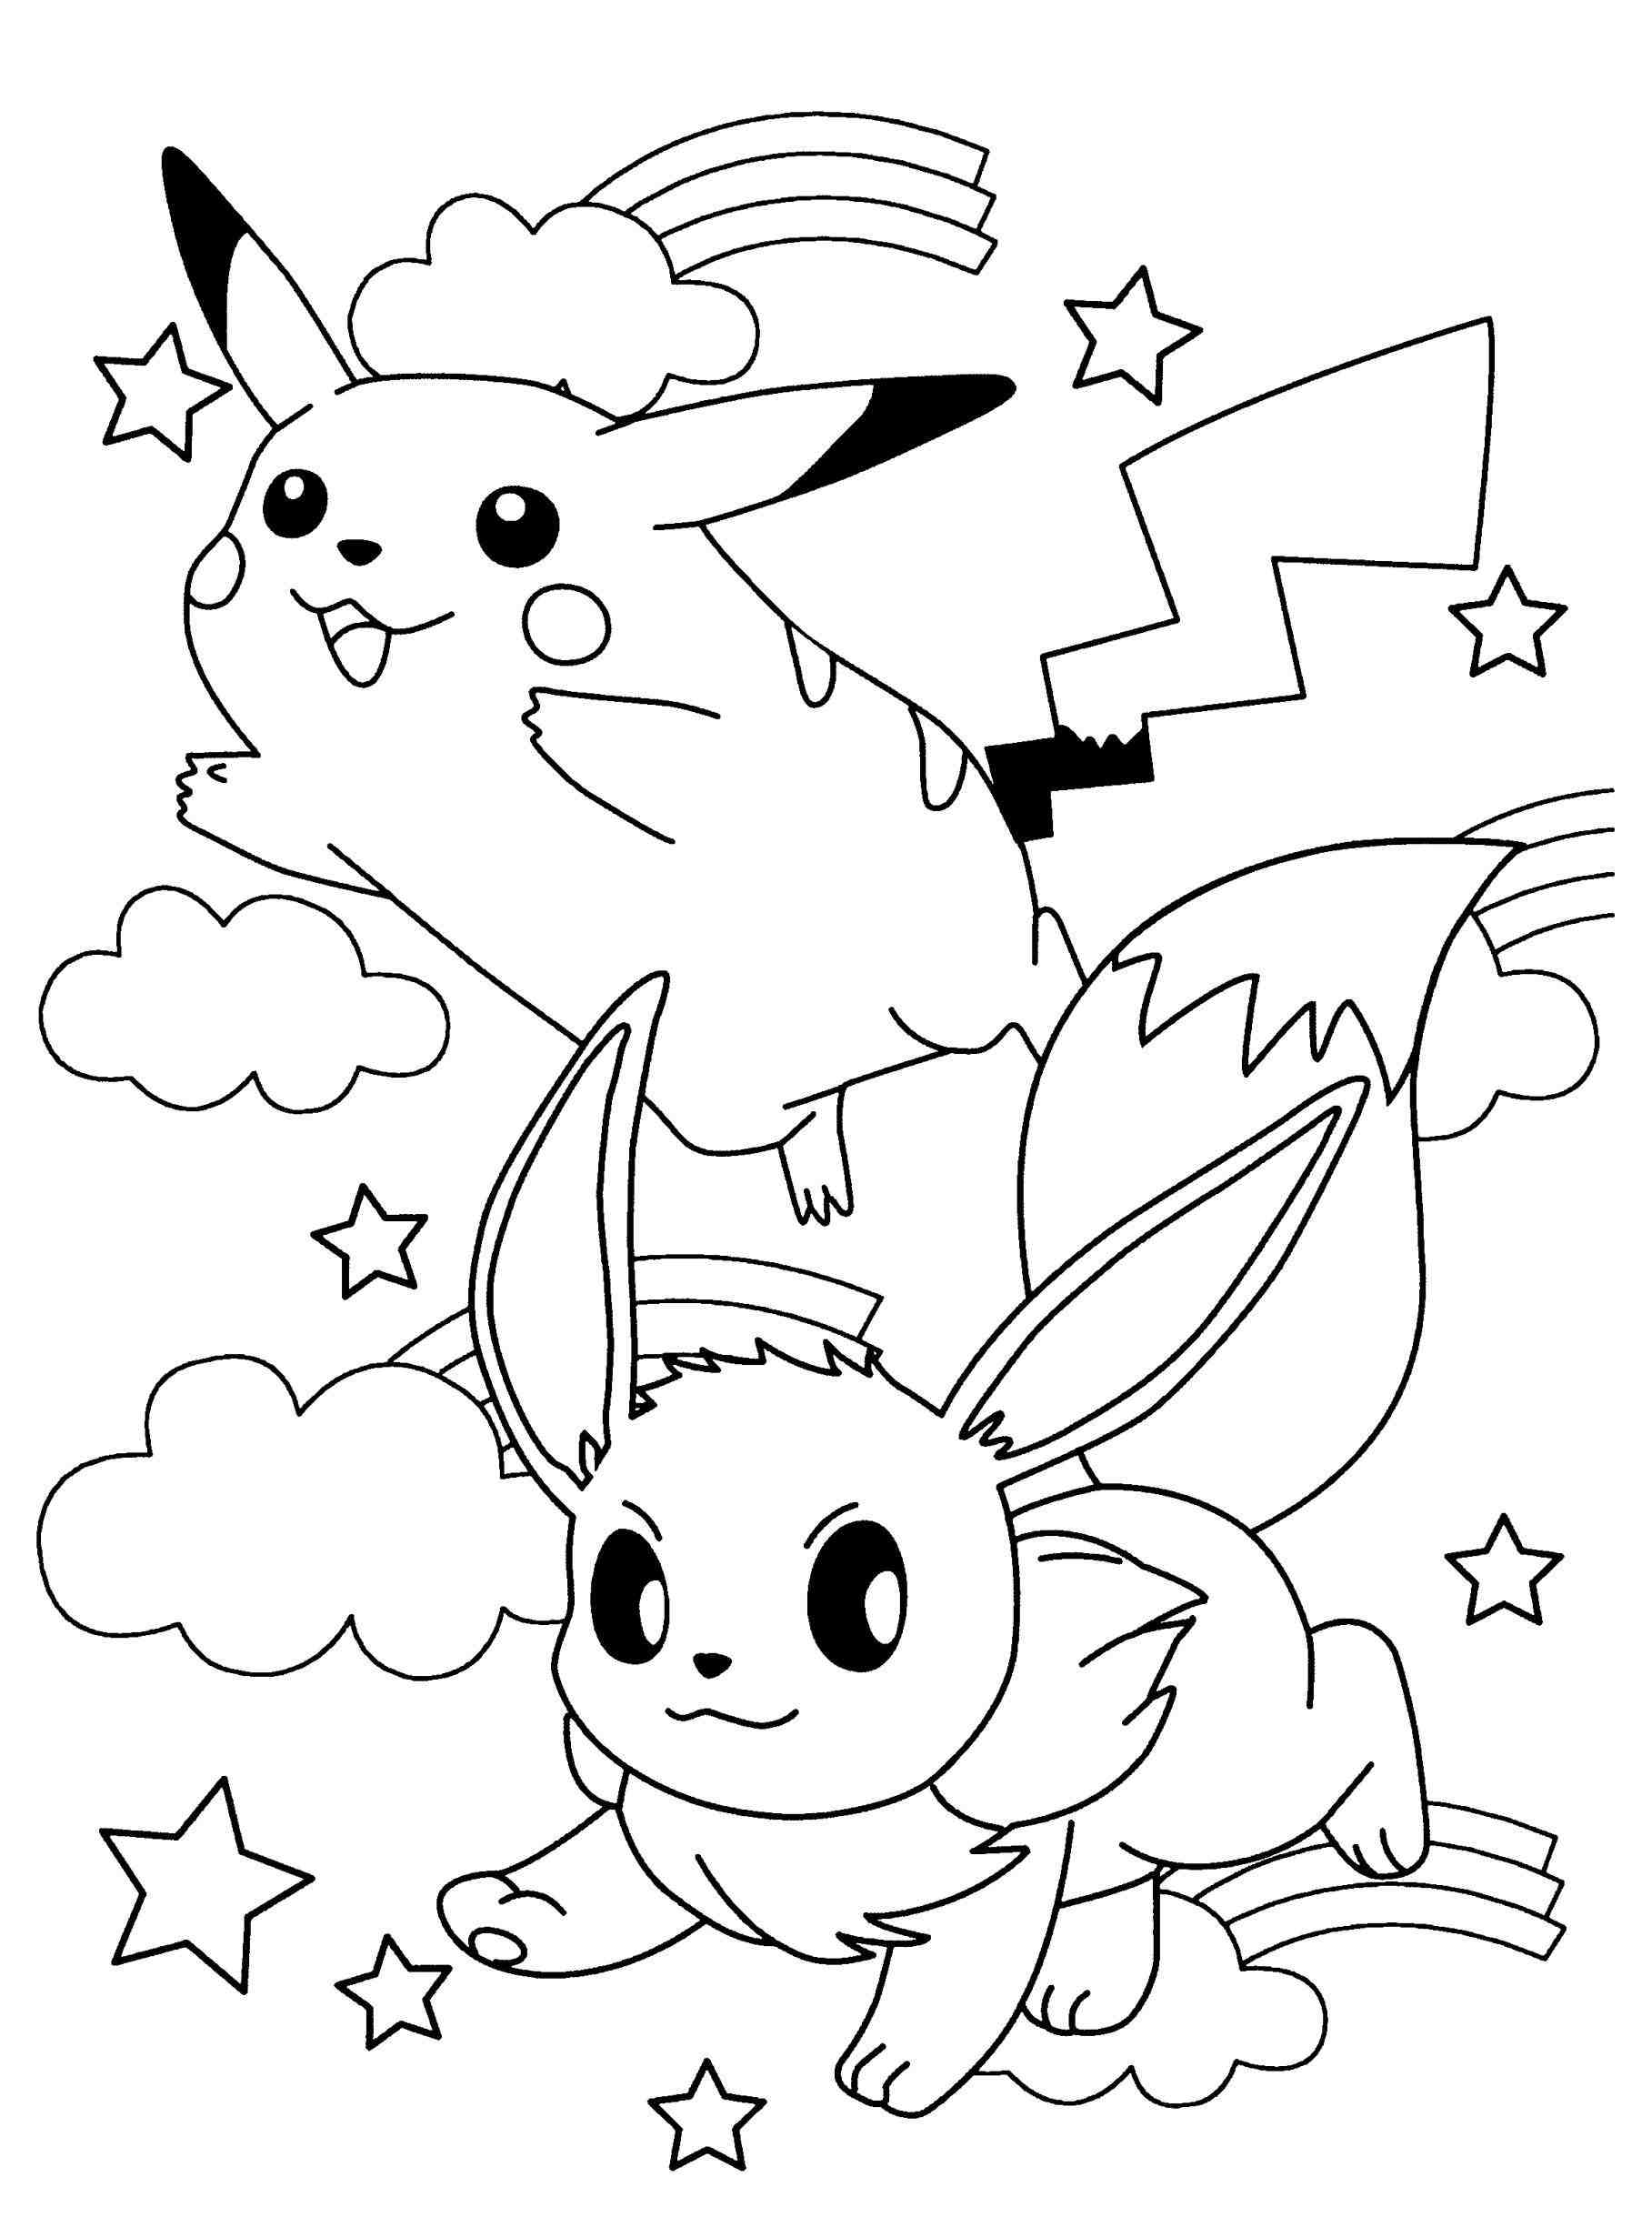 cute pokemon coloring pages coloring pic tina7408firkloeverskolendk pinterest cute coloring pokemon pages